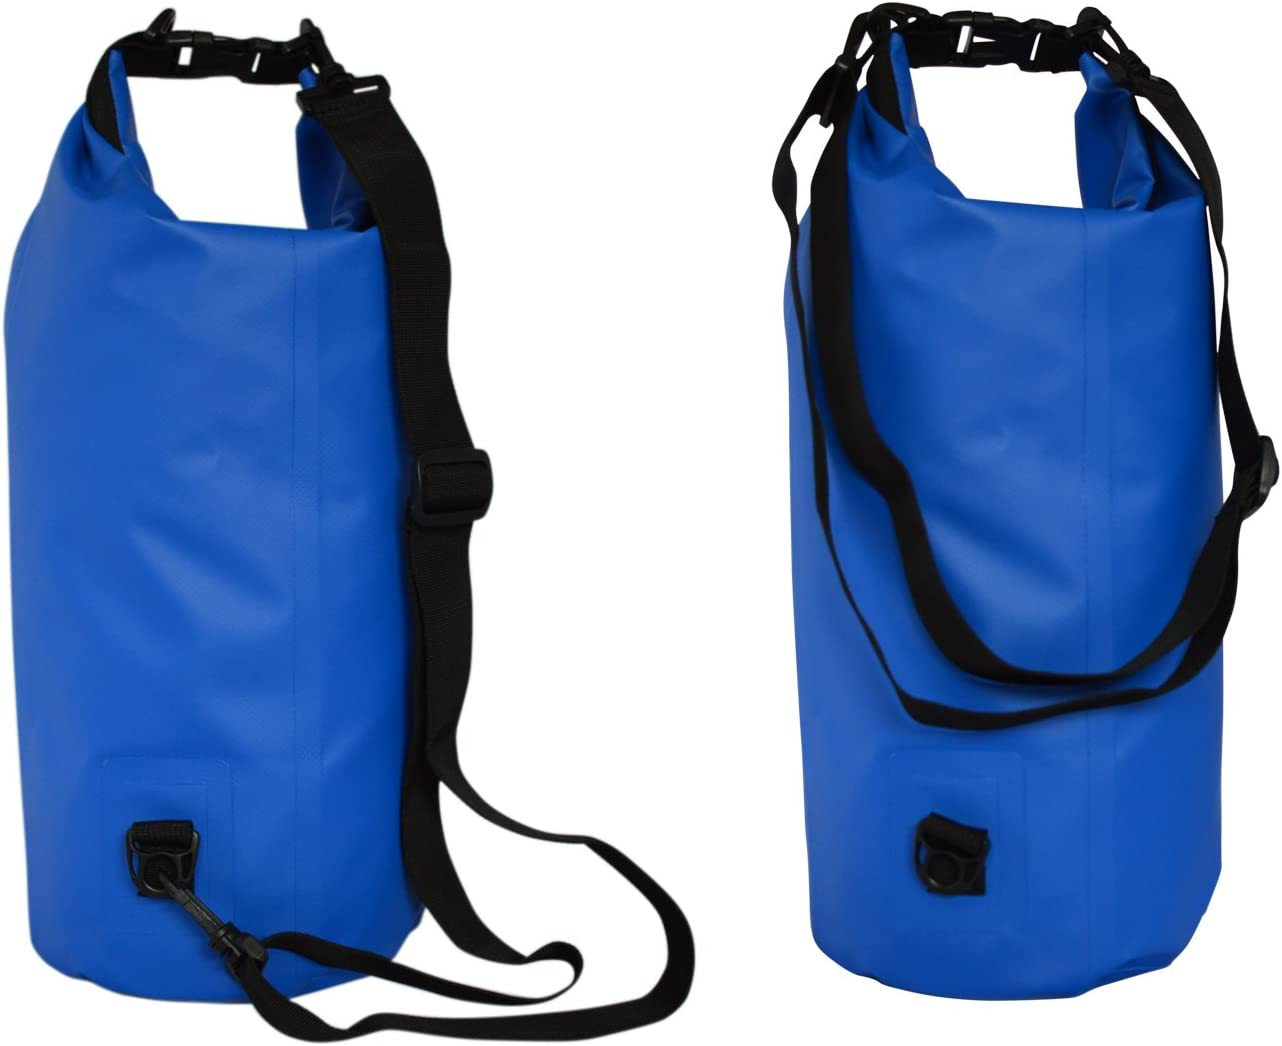 Kayaking Paddle Boarding Gold Coast gear Dry Bag Roll Top Waterproof Sack Fishing Canoeing Multiple Sizes /& Colors Includes Shoulder Strap Hiking Best for Camping Outdoor Sports and Rafting